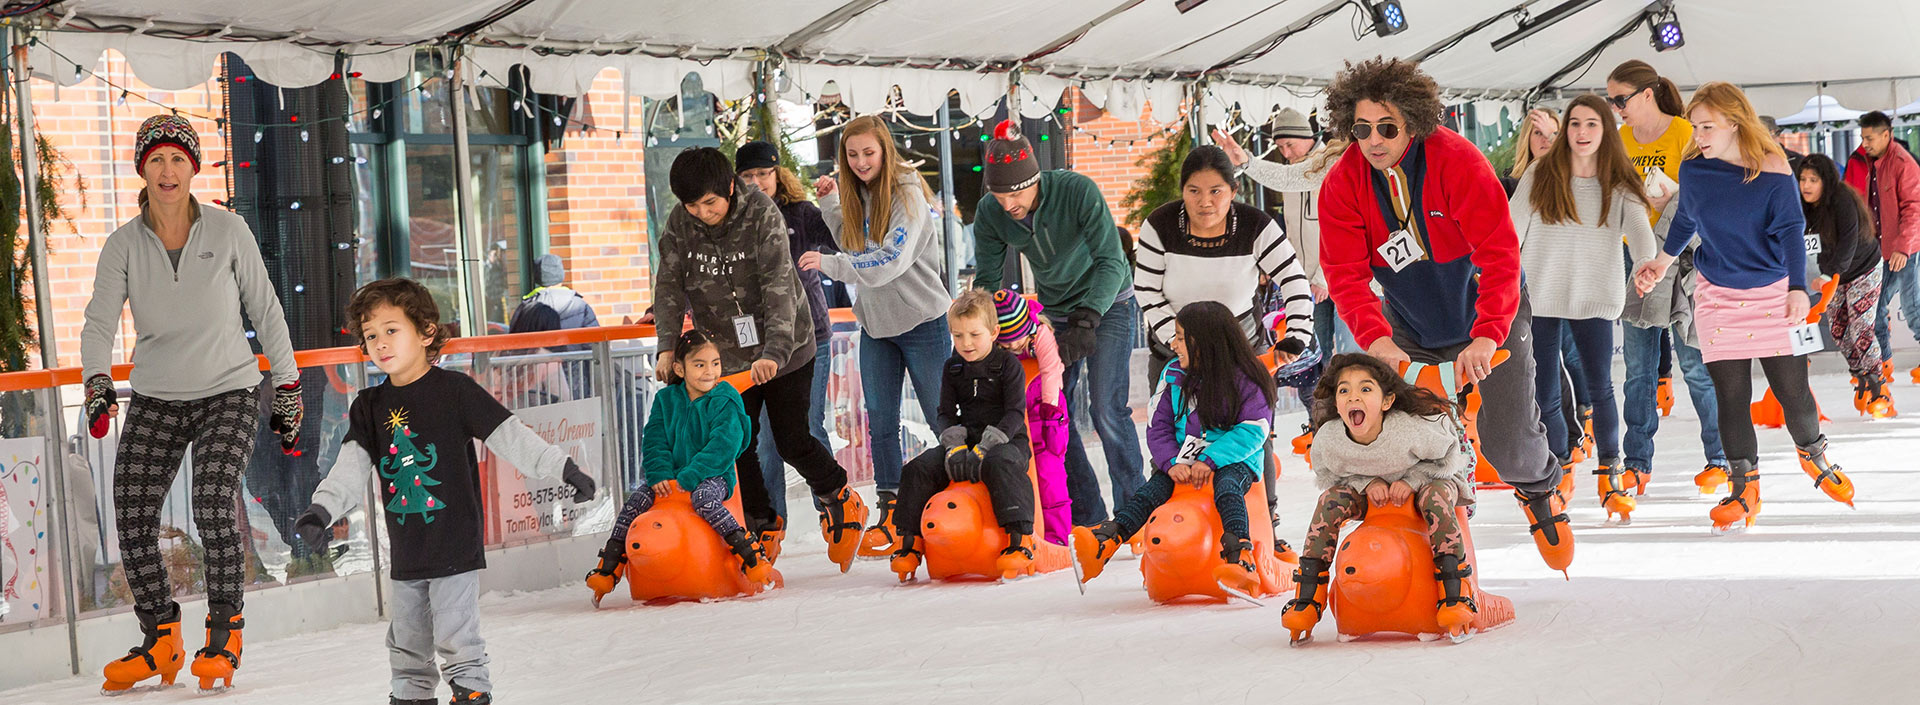 A group of skaters enjoying the ice at Winter Village. Many are pushing young children on bobby ice skating aids.